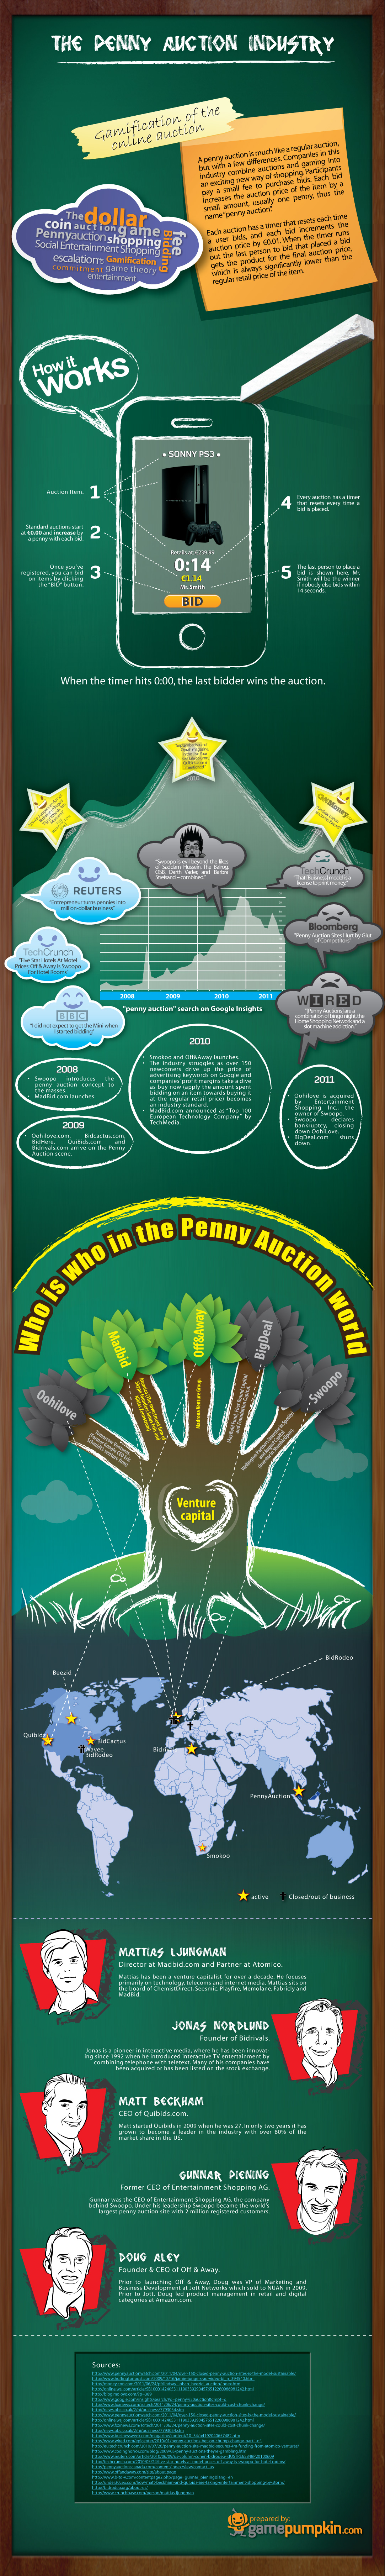 The Penny Auction Industry 1